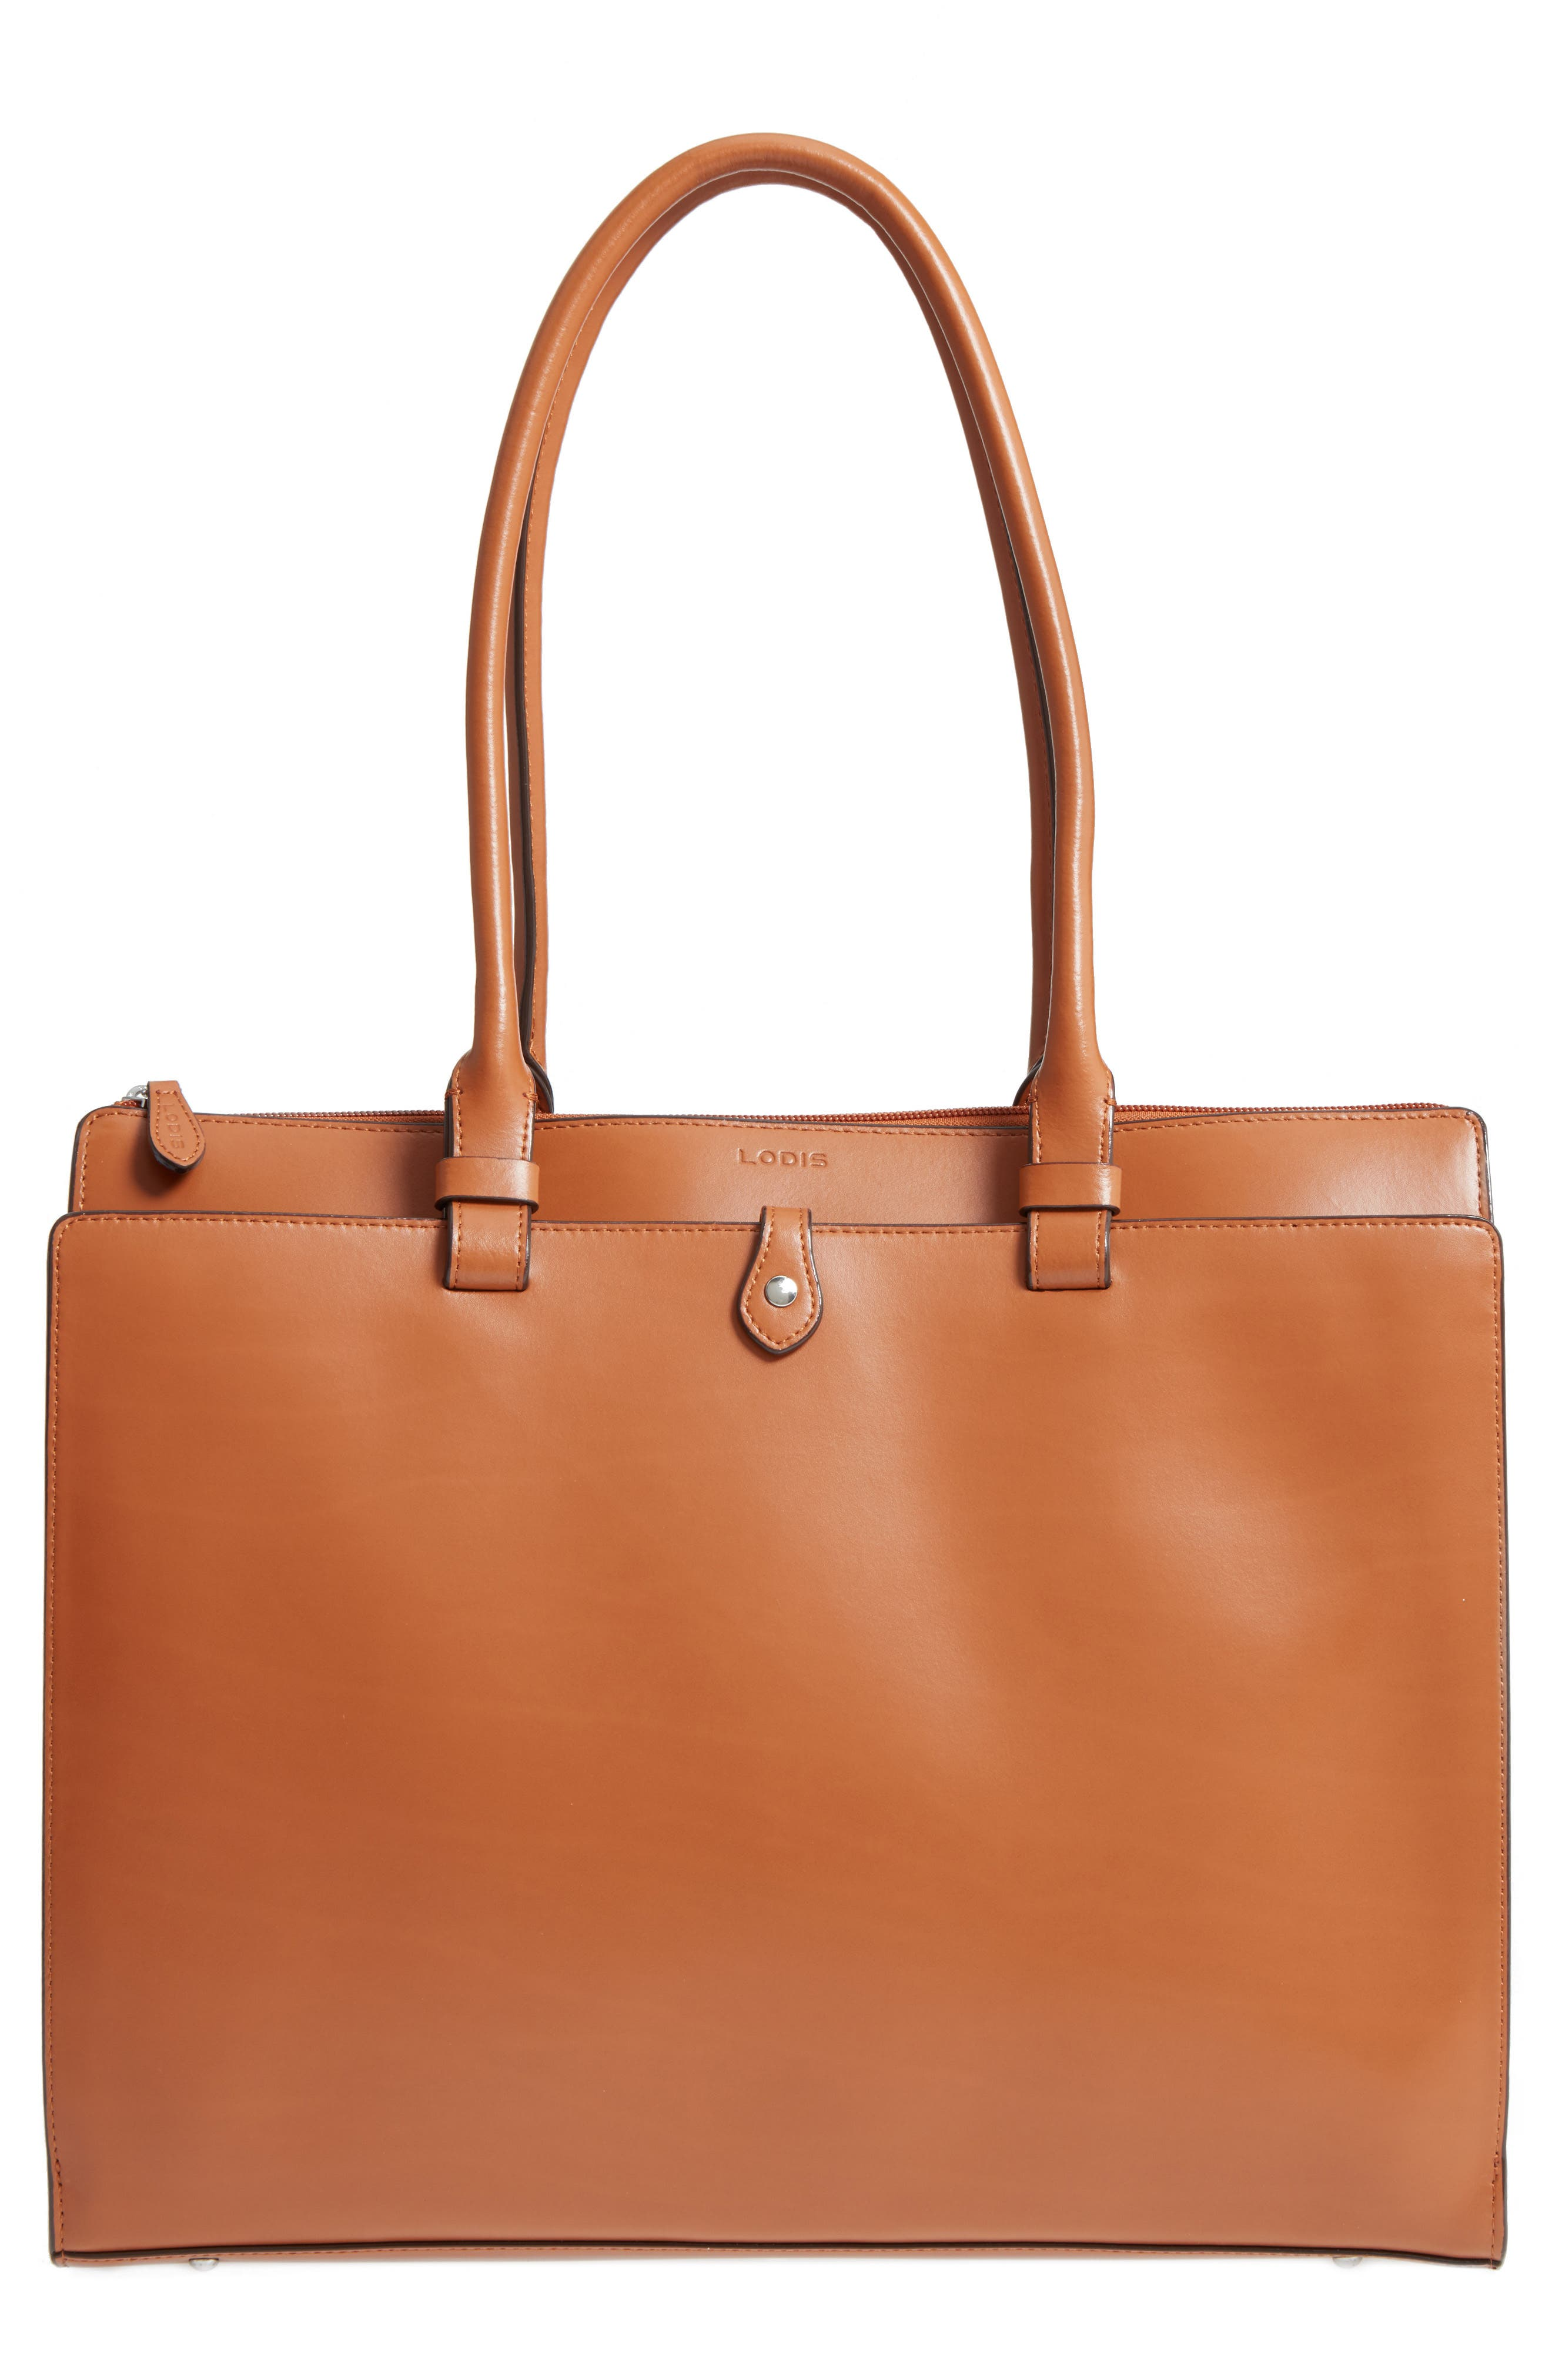 LODIS Audrey Under Lock & Key - Jessica RFID Leather Satchel,                         Main,                         color, Toffee